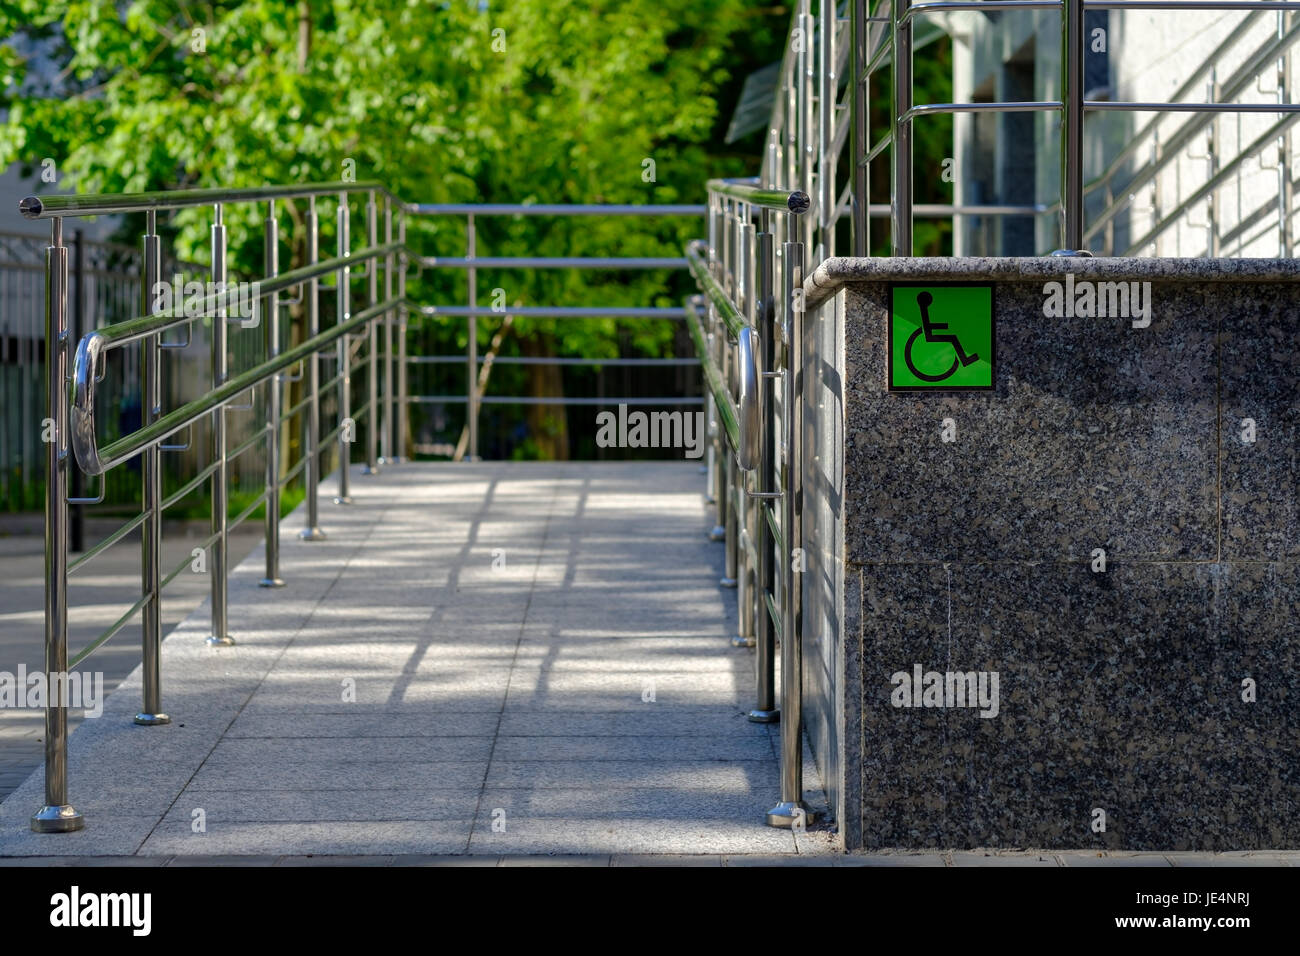 Equipped with outdoor access for the disabled. - Stock Image